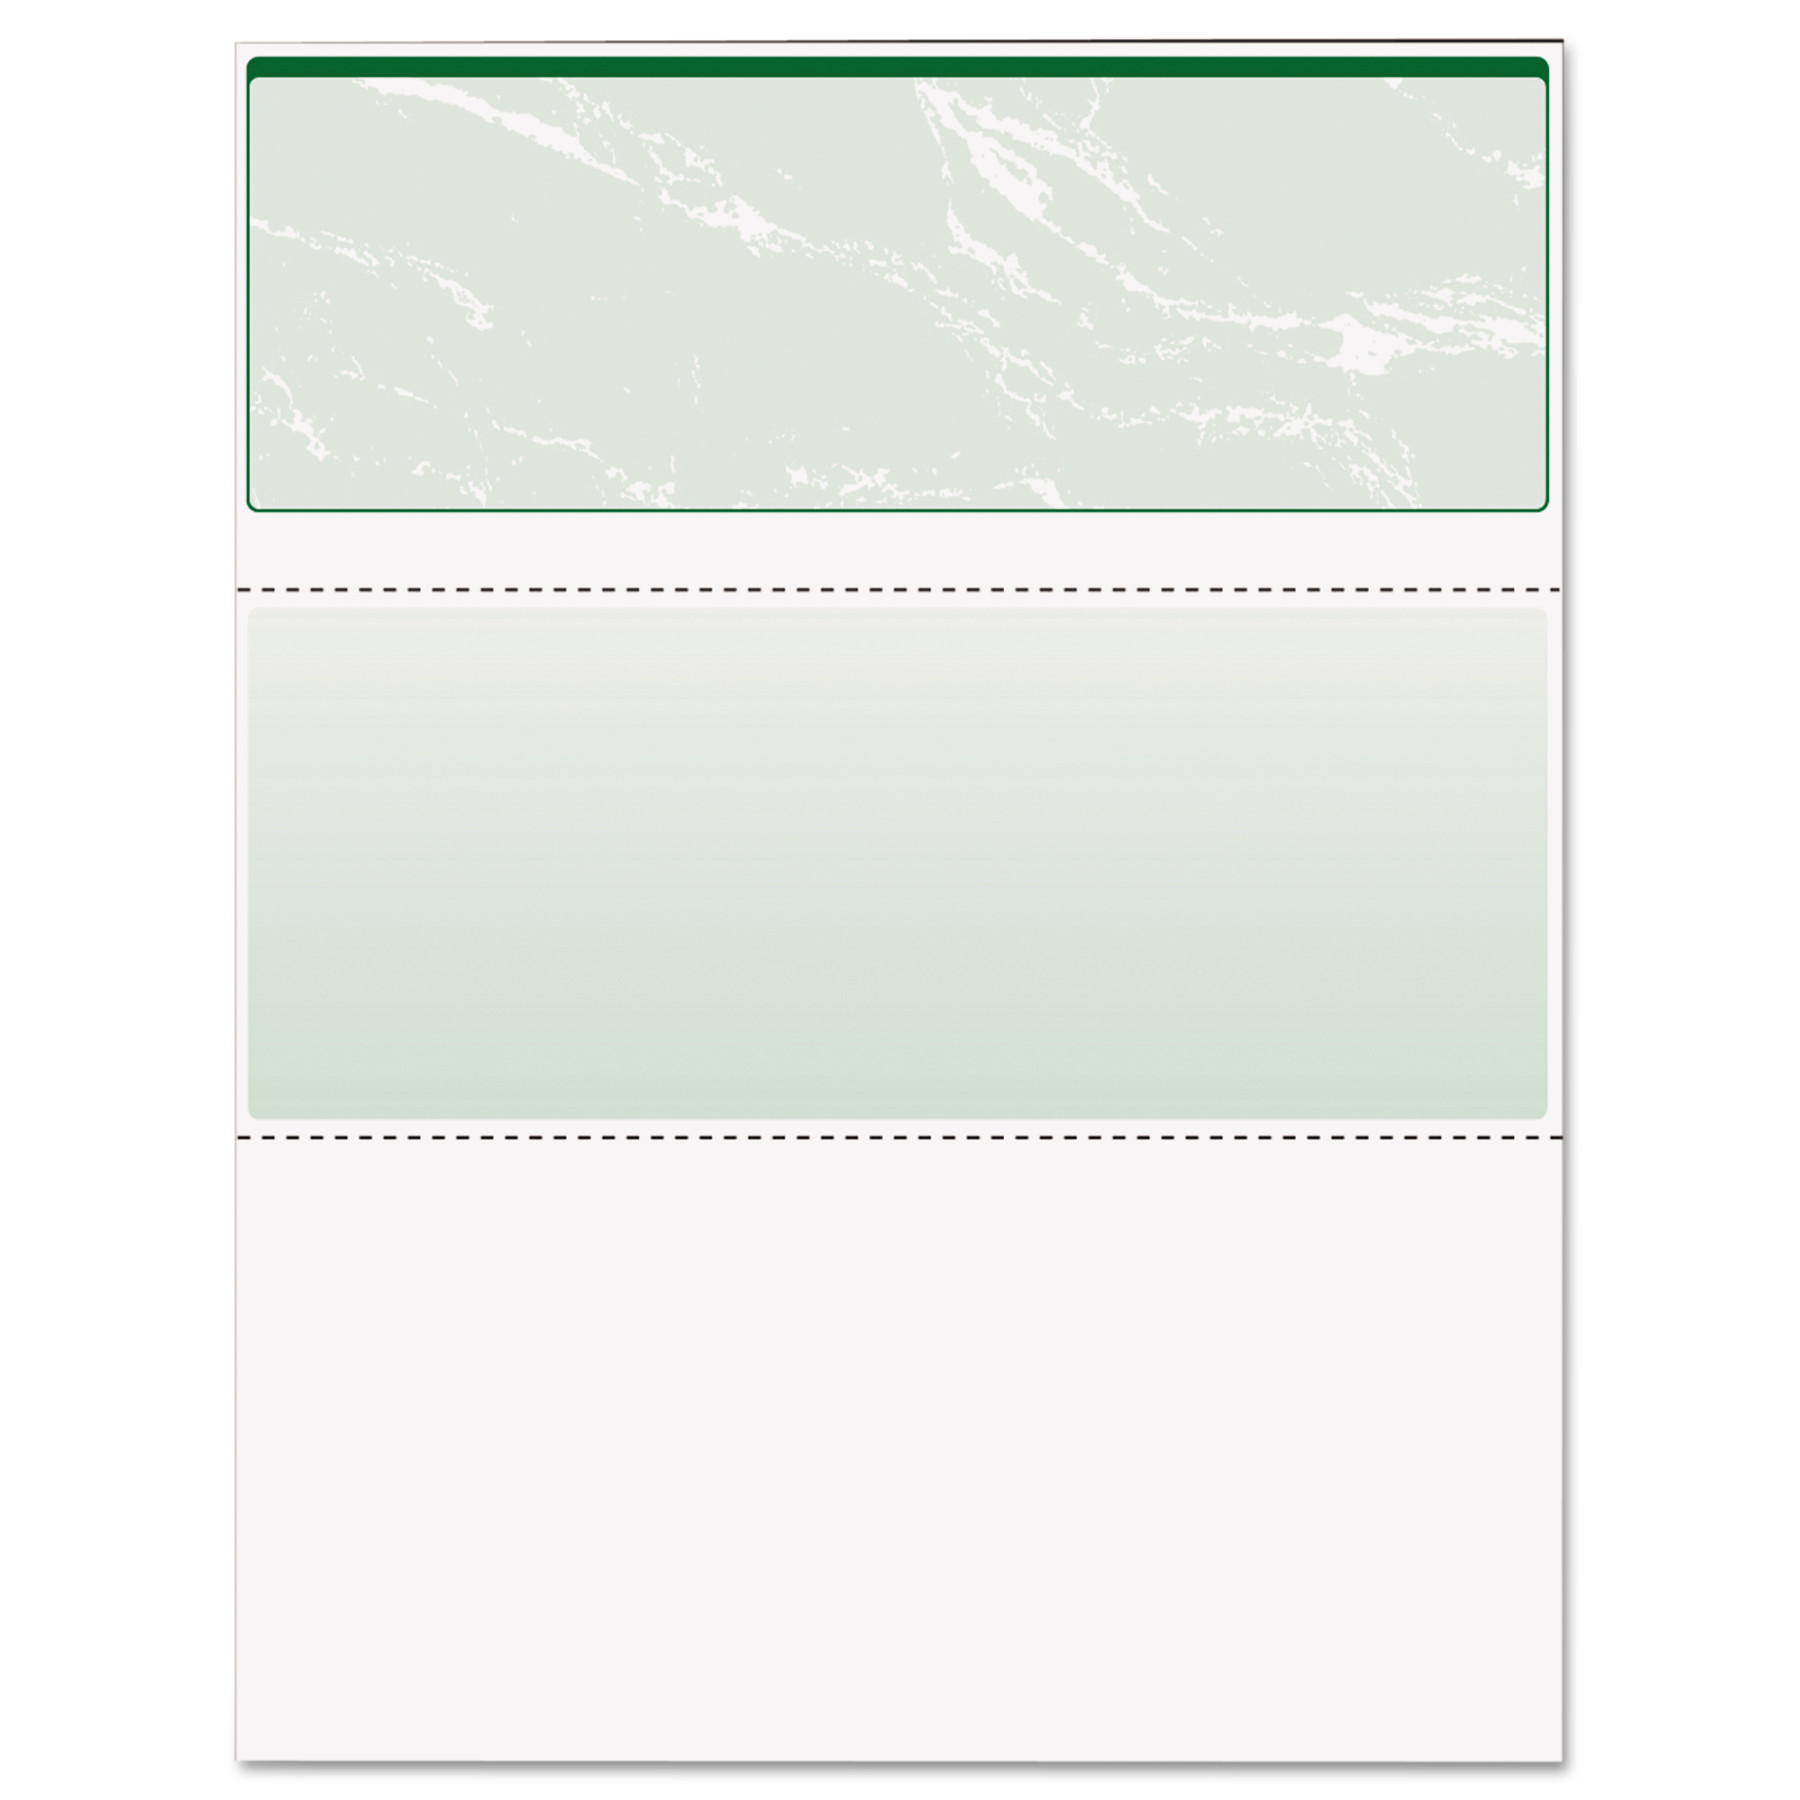 DocuGard Standard Security Check, Green Marble Top, 11 Features, 8 1/2 x 11, 500/RM